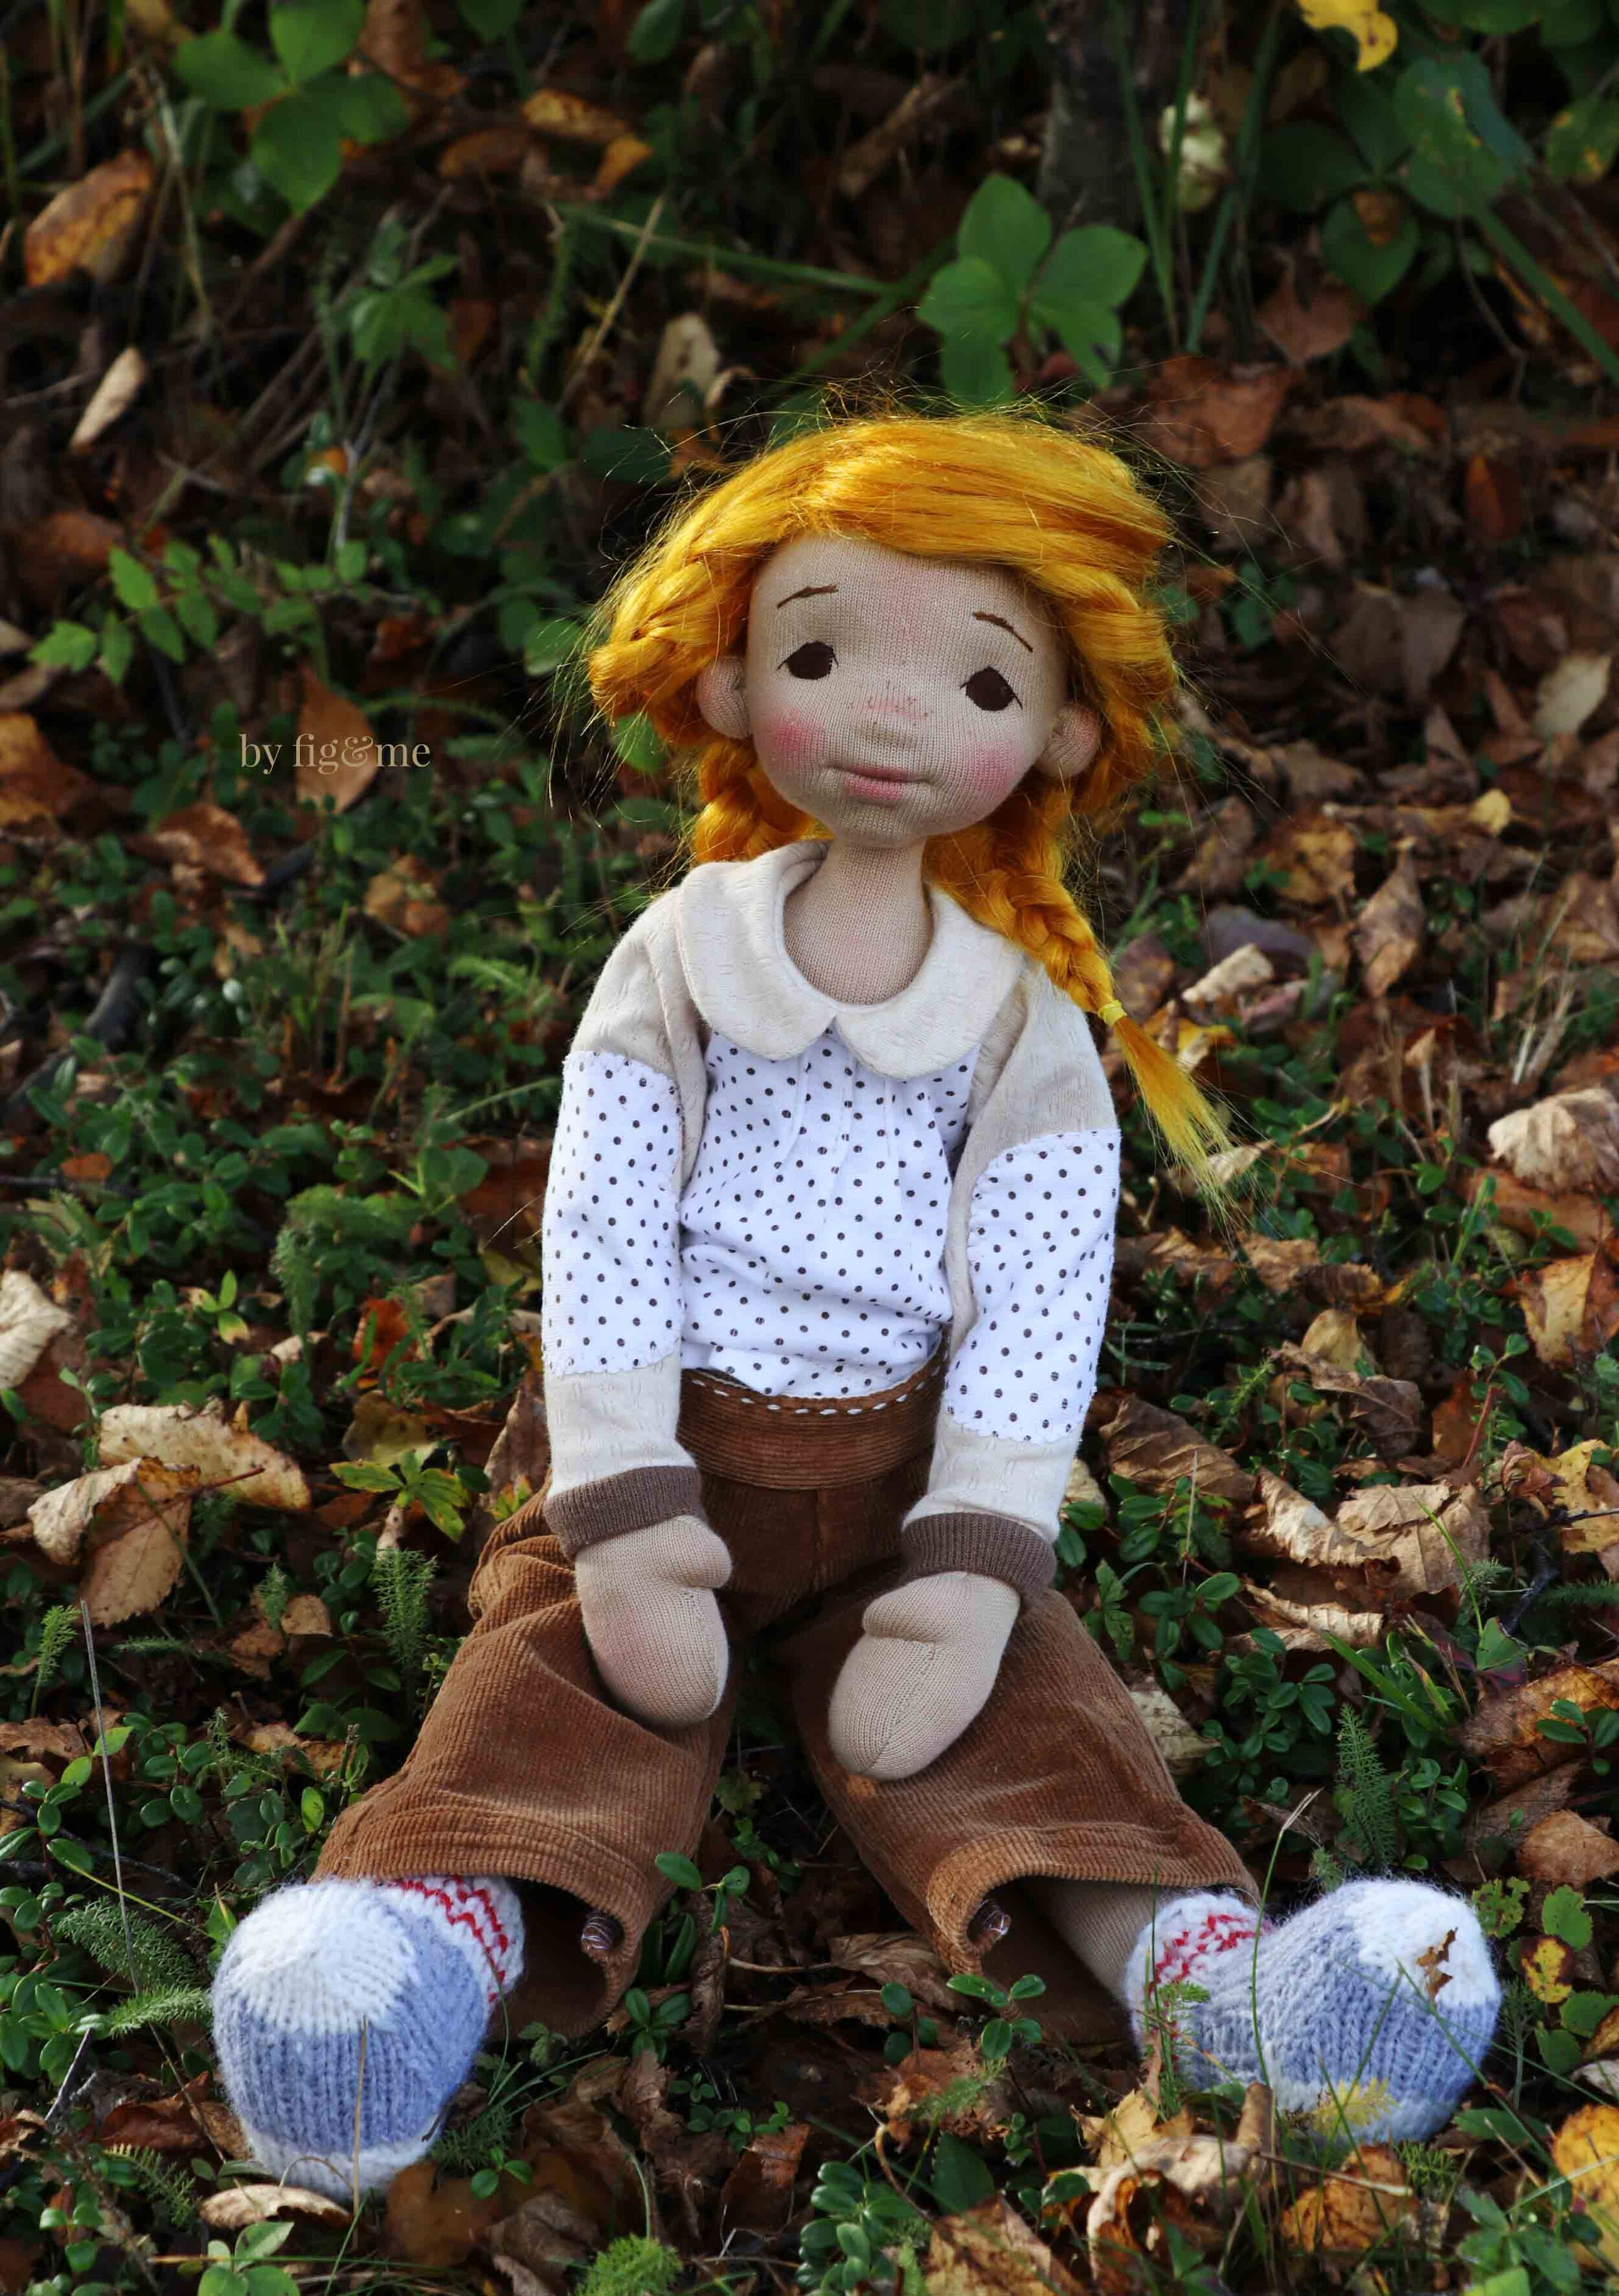 Winona wearing her corduroy pants, her shirt tucked in and her stolen socks, art doll by fig and me